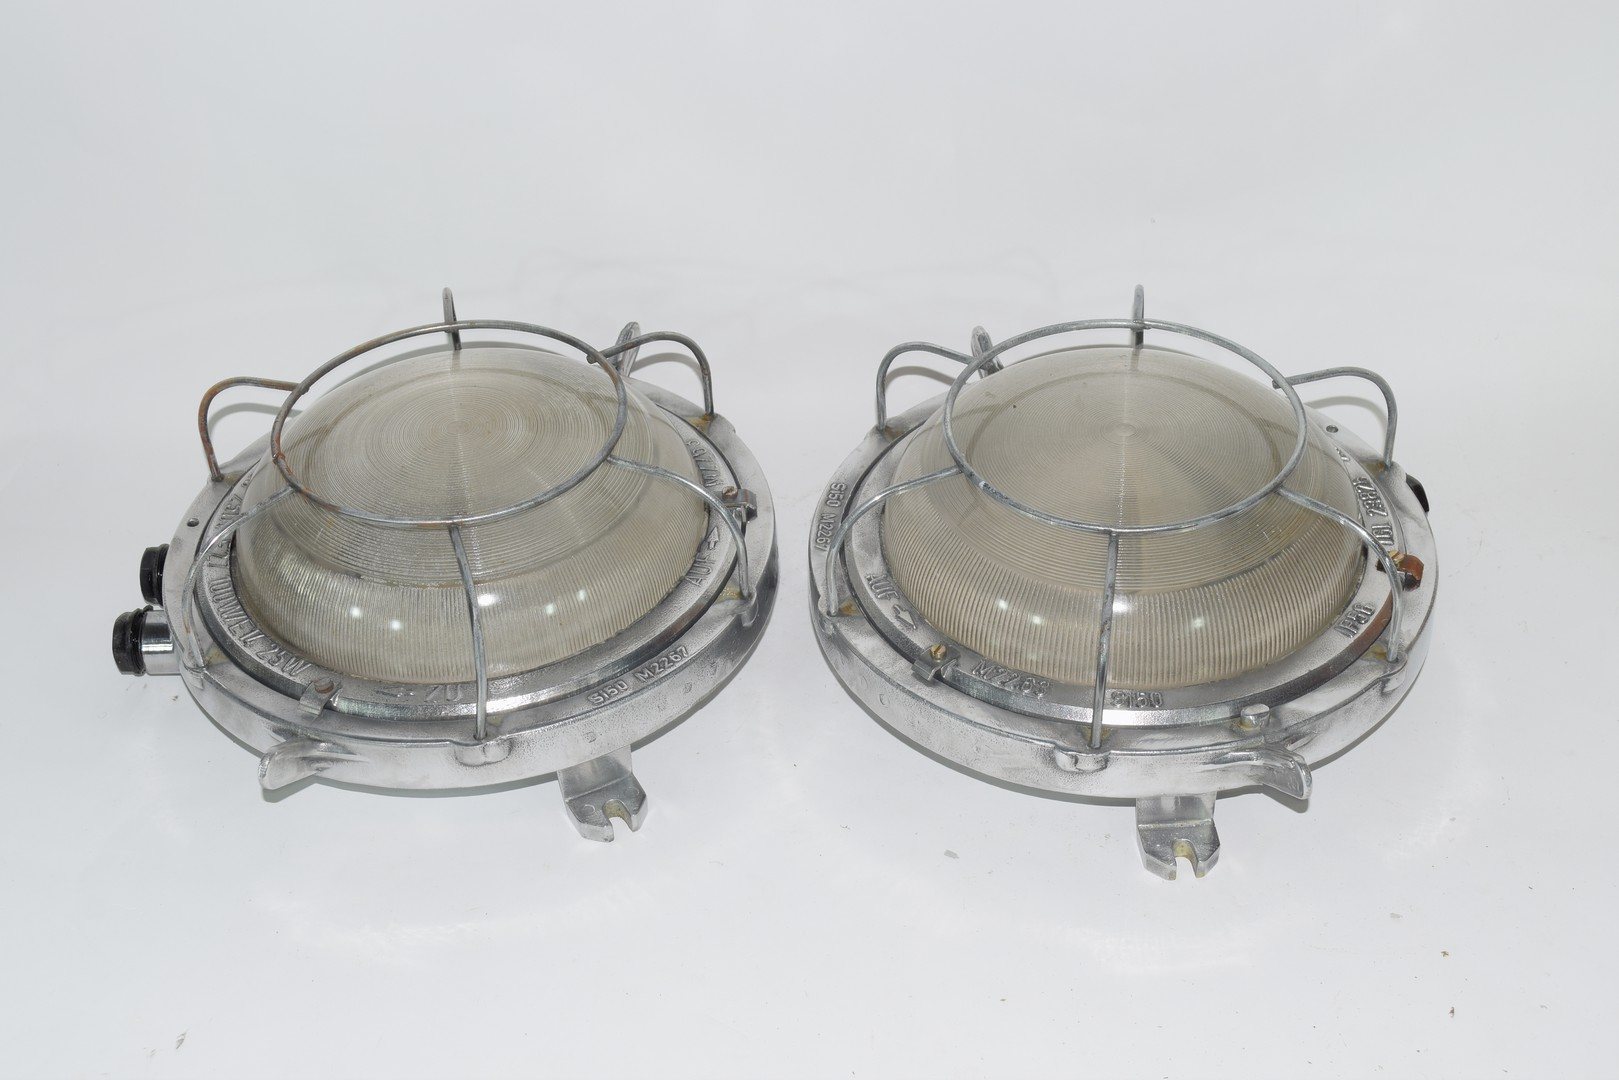 Pair of ship's lights - Image 6 of 6